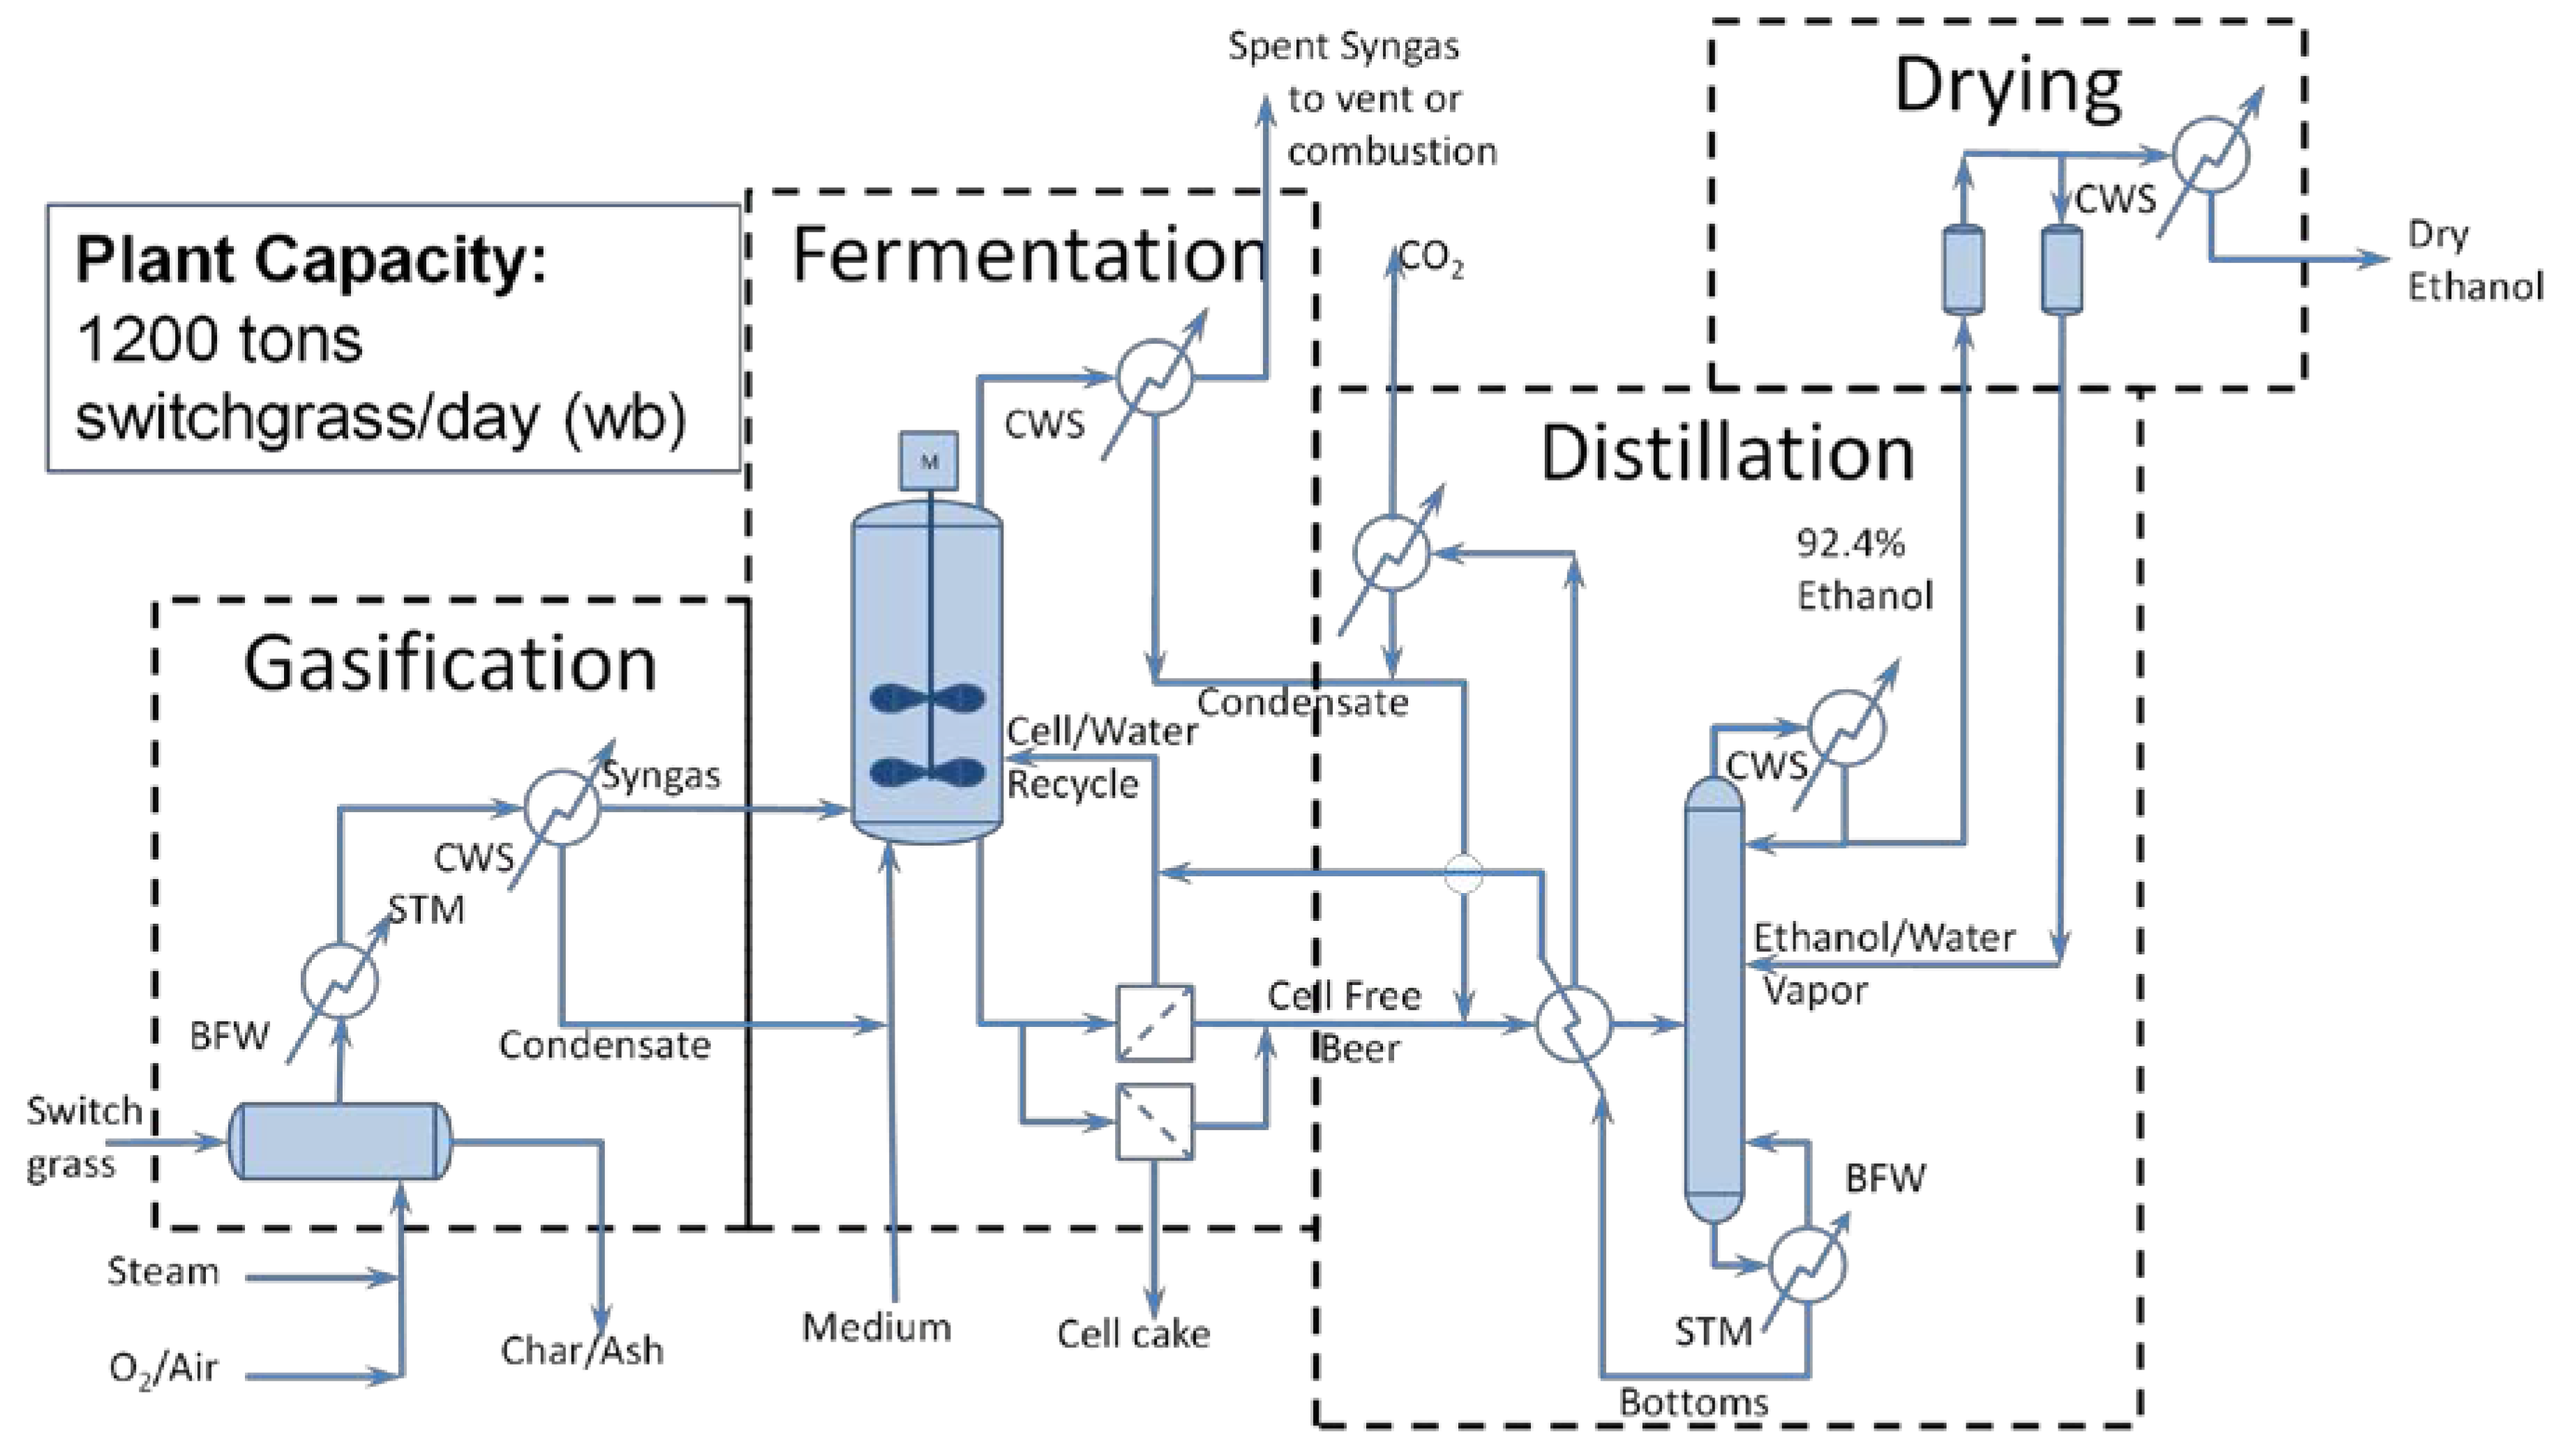 an analysis of the process of fermentation For conversion to hydrogen and methane through a fermentation process   furthermore, as result of economic calculation analysis, this biohythane system.